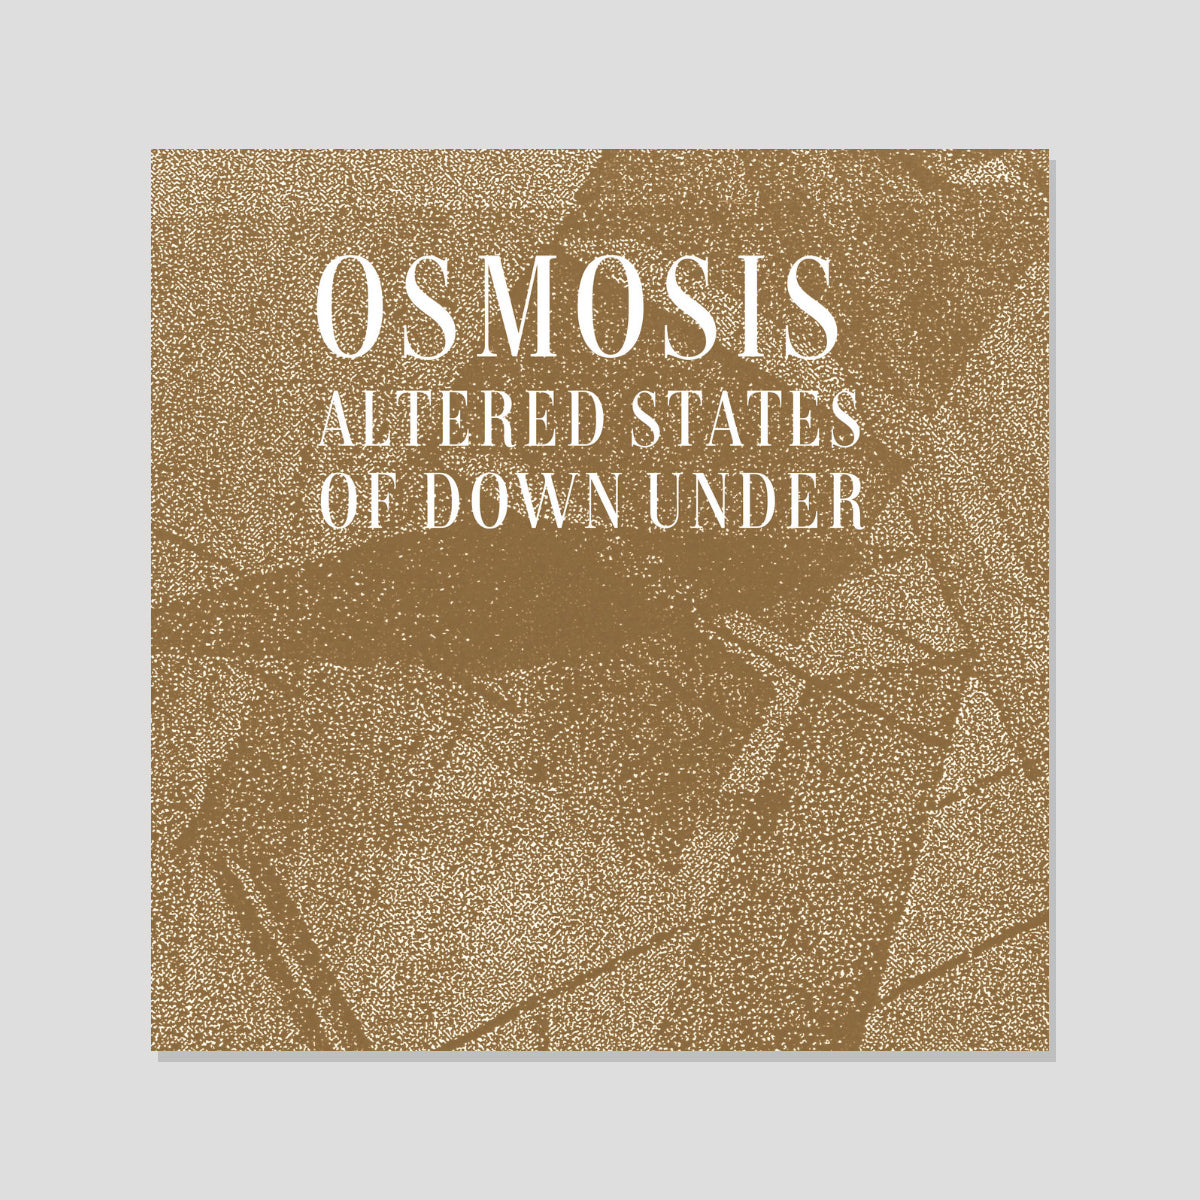 "ALTERED STATES TAPES ""OSMOSIS: ALTERTED STATES OF DOWN UNDER"""